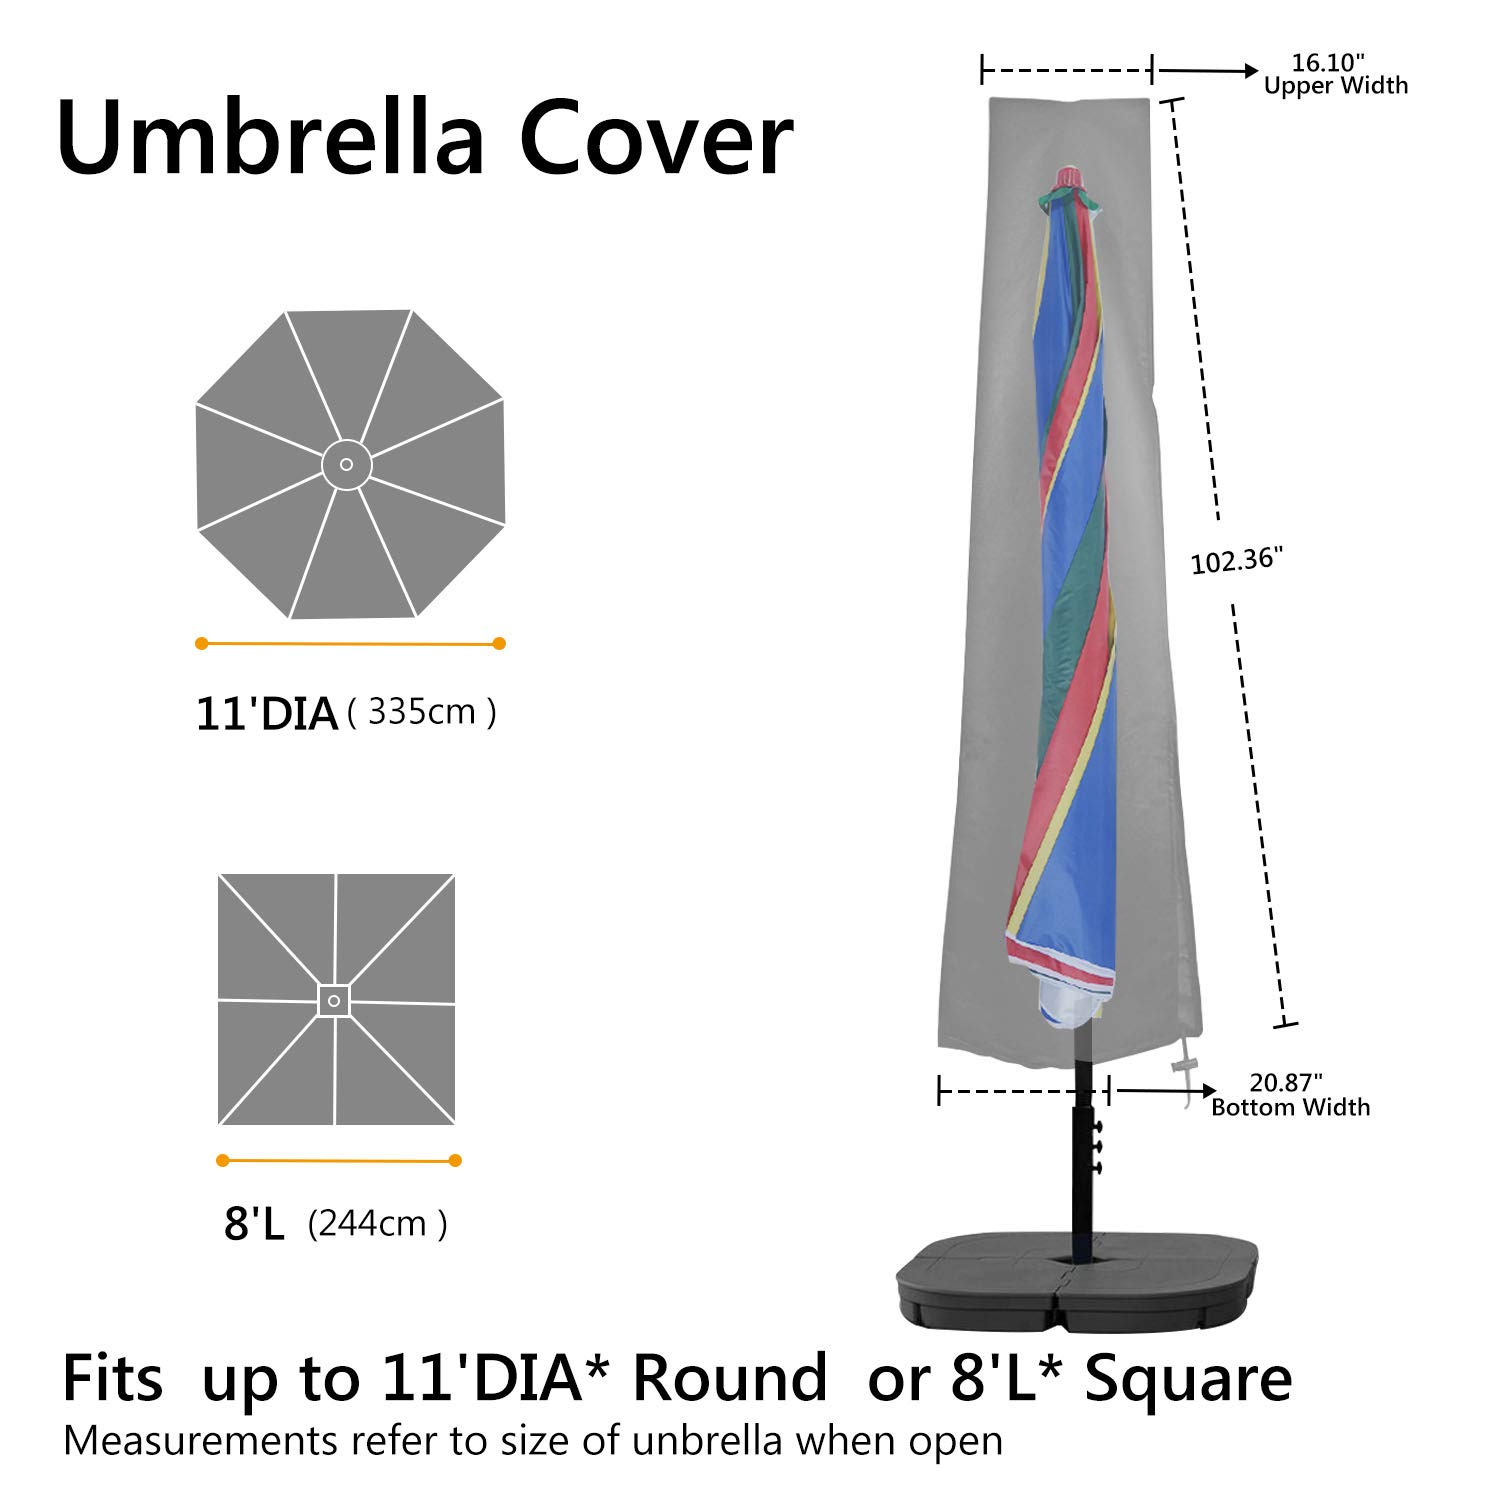 RATEL Parasol Cover Patio Umbrella Cover Cantilever Umbrella Cover for 9ft to 11ft Outdoor Umbrellas Cover with Zipper and Waterproof Oxford Fabric Black